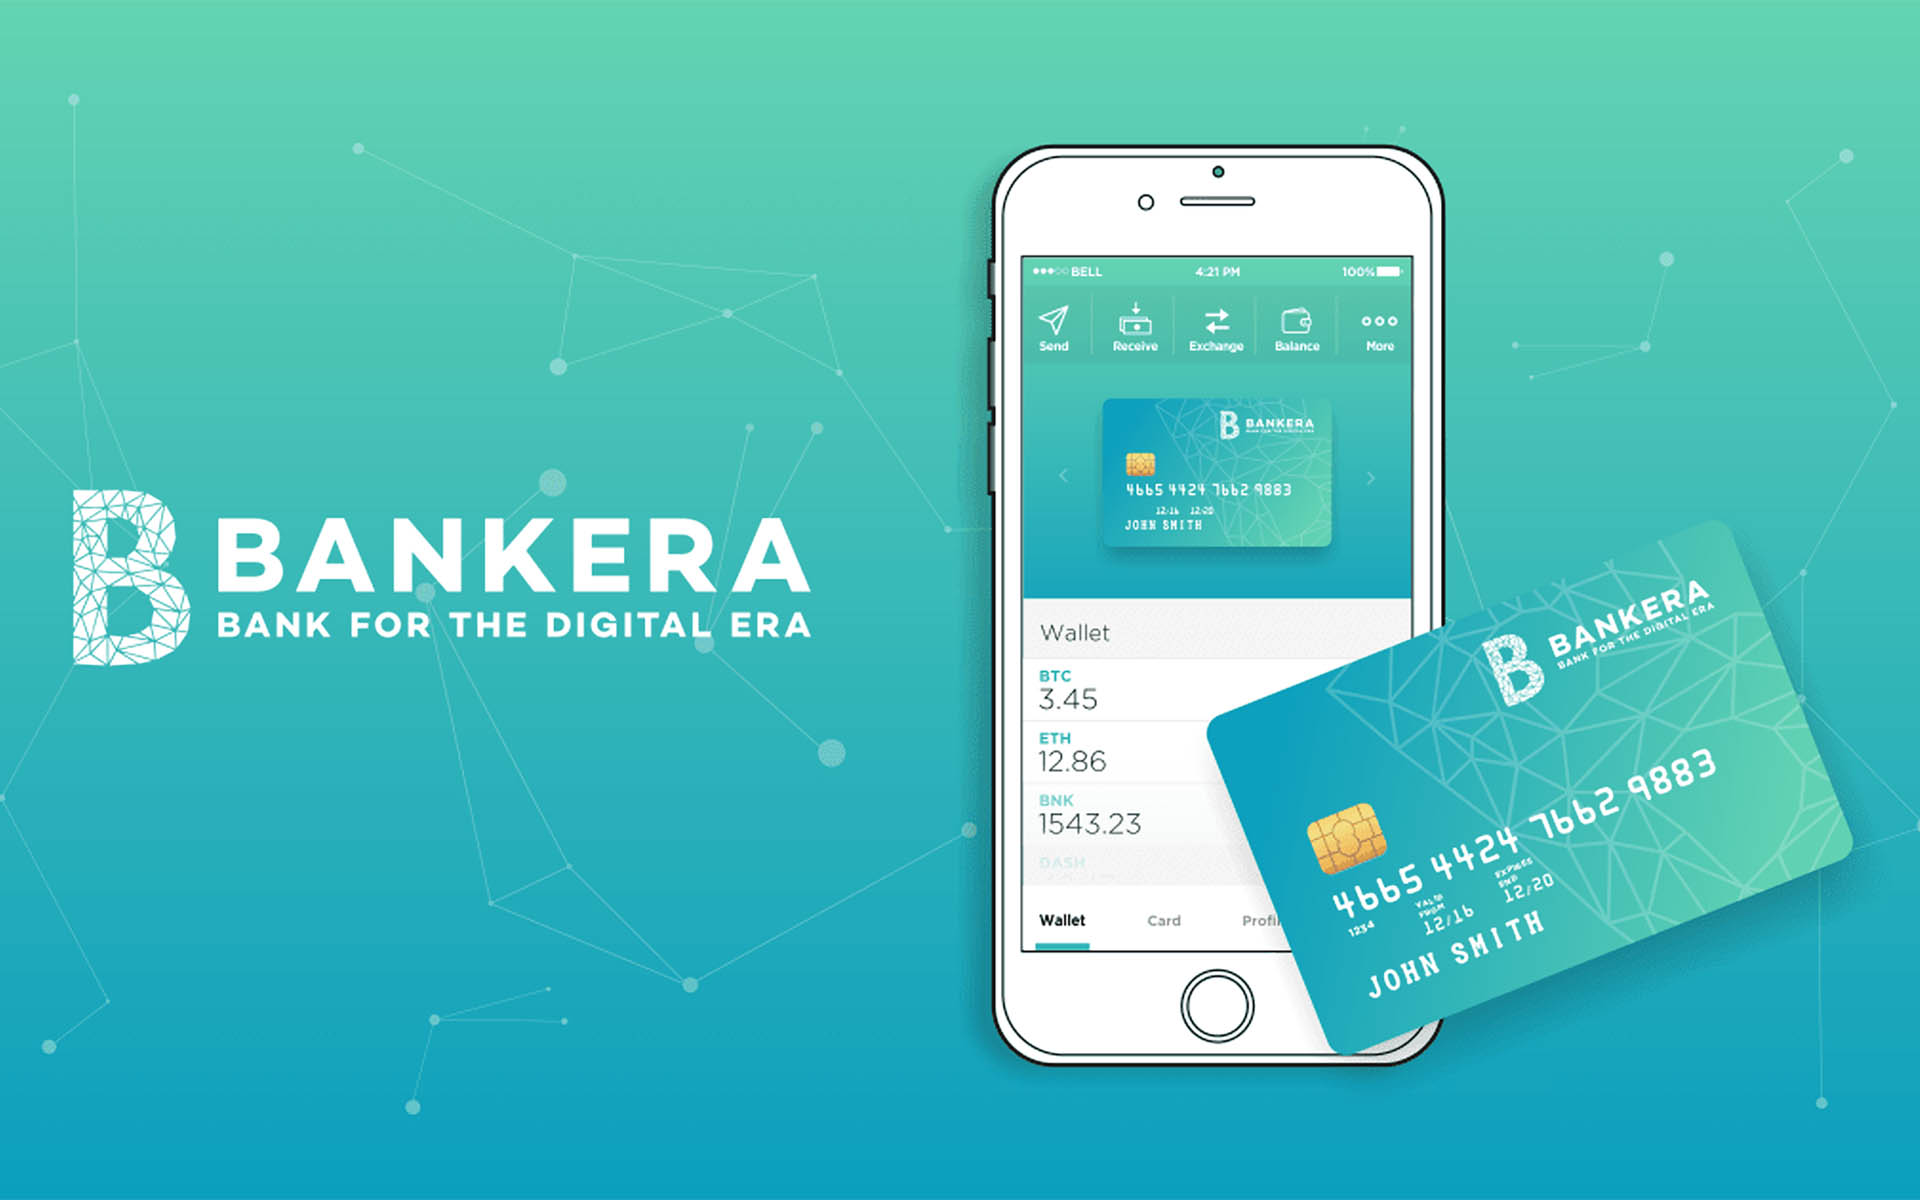 Bankera ICO Raises Over 100 Million Euros From Record-Breaking Number of Contributors